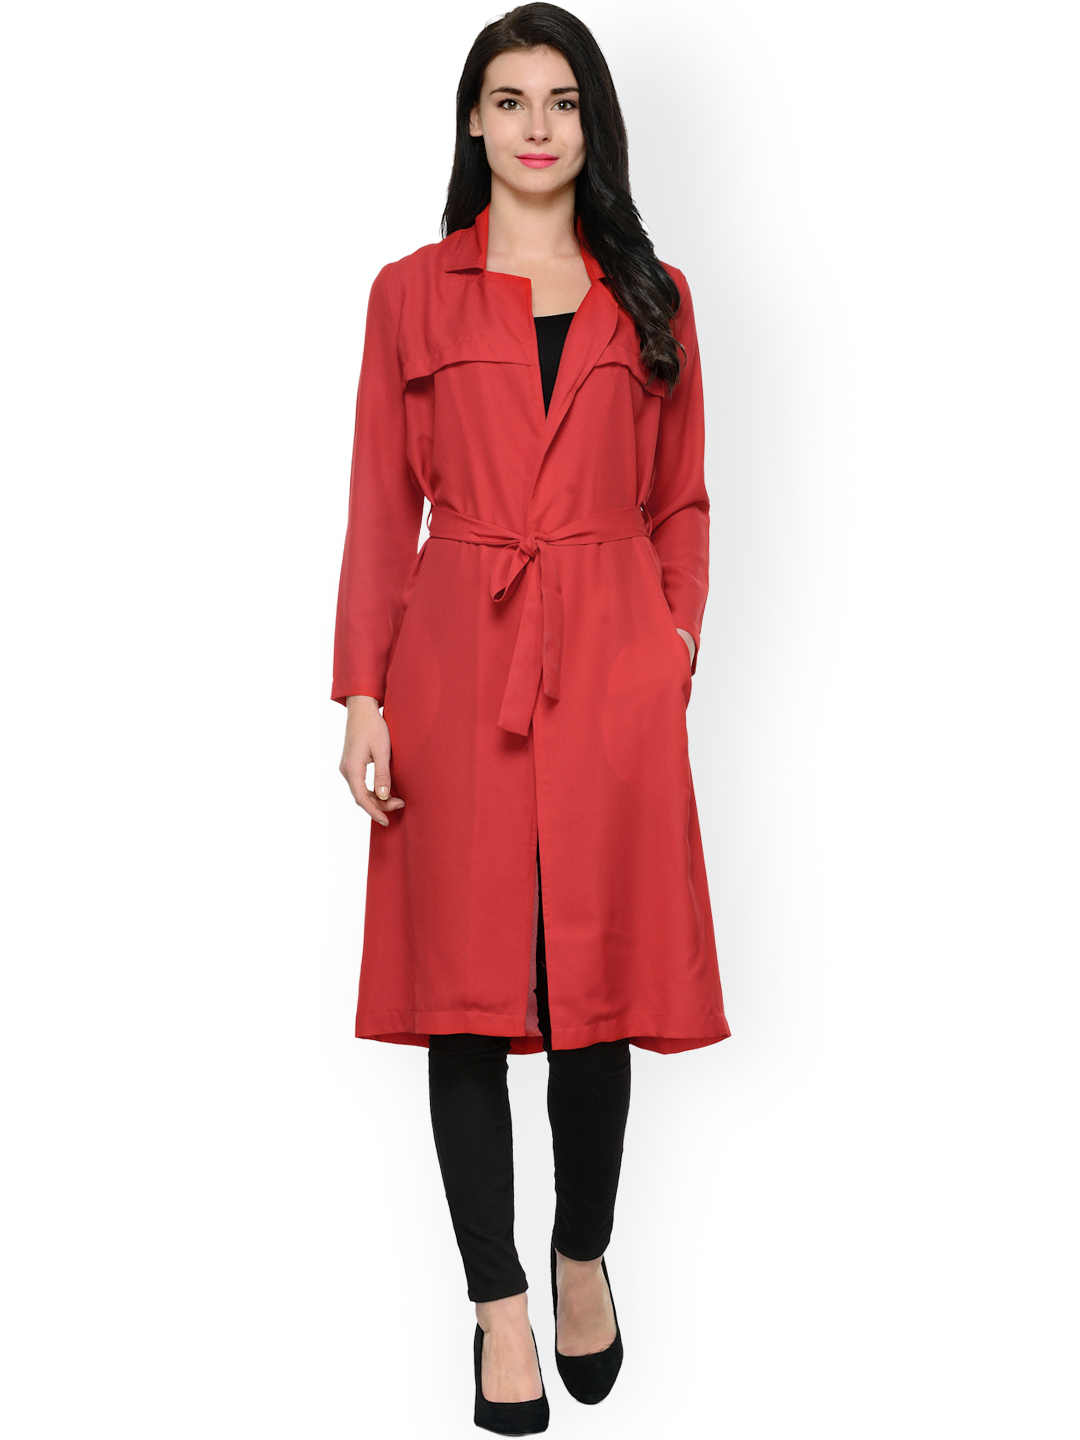 Red Coats - Buy Red Coats online in India